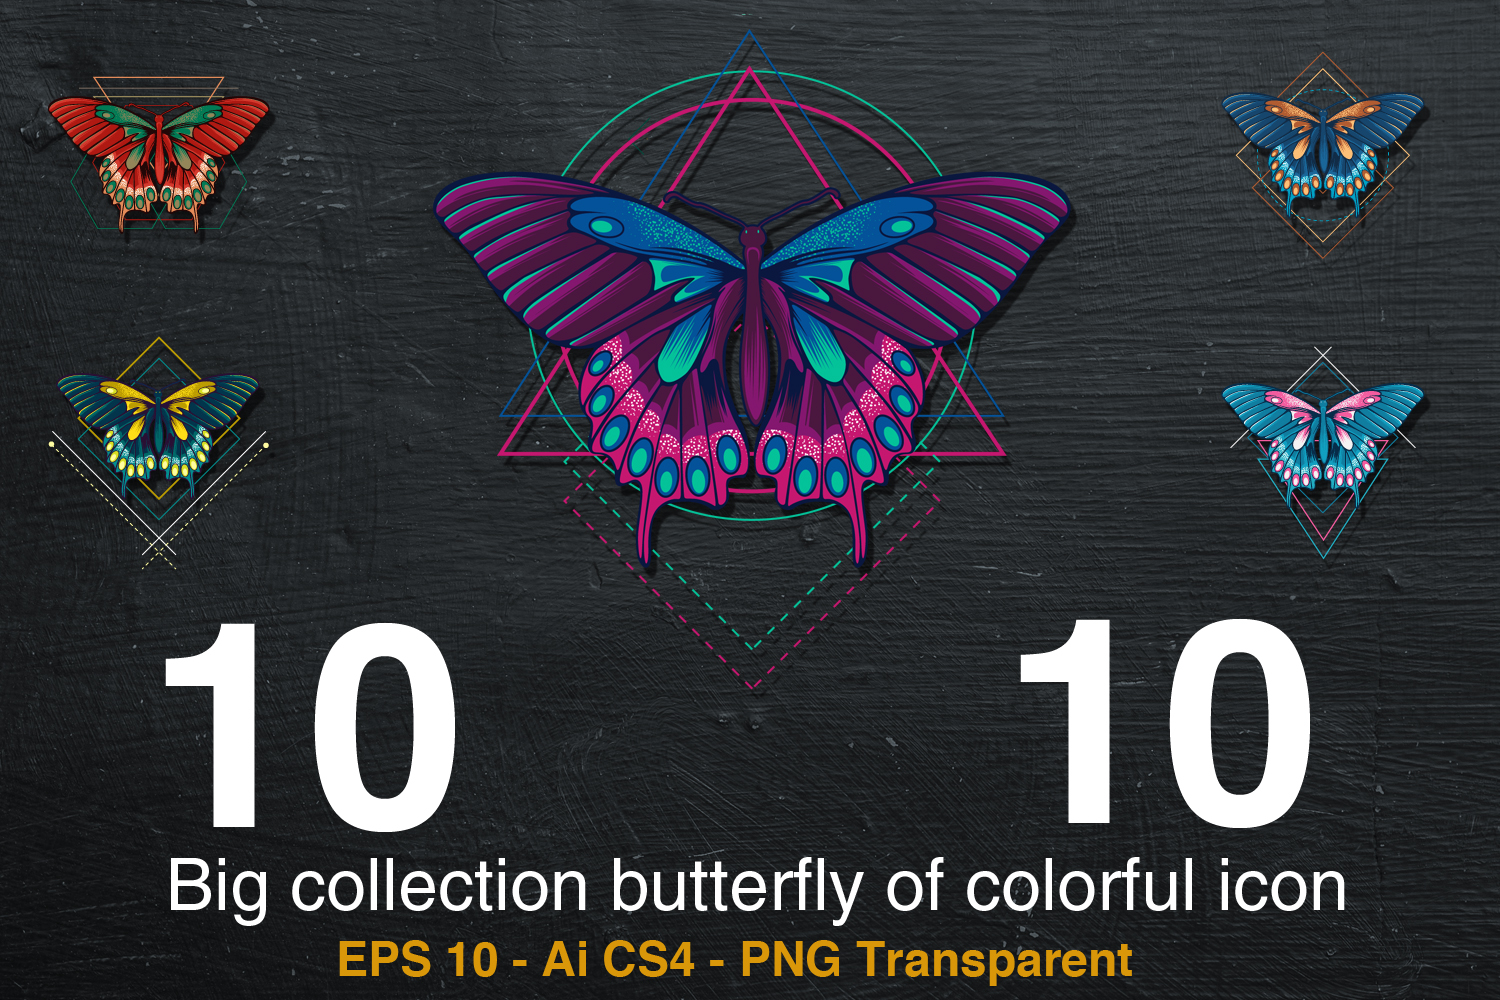 10 Big collection butterfly of colorful icon example image 1